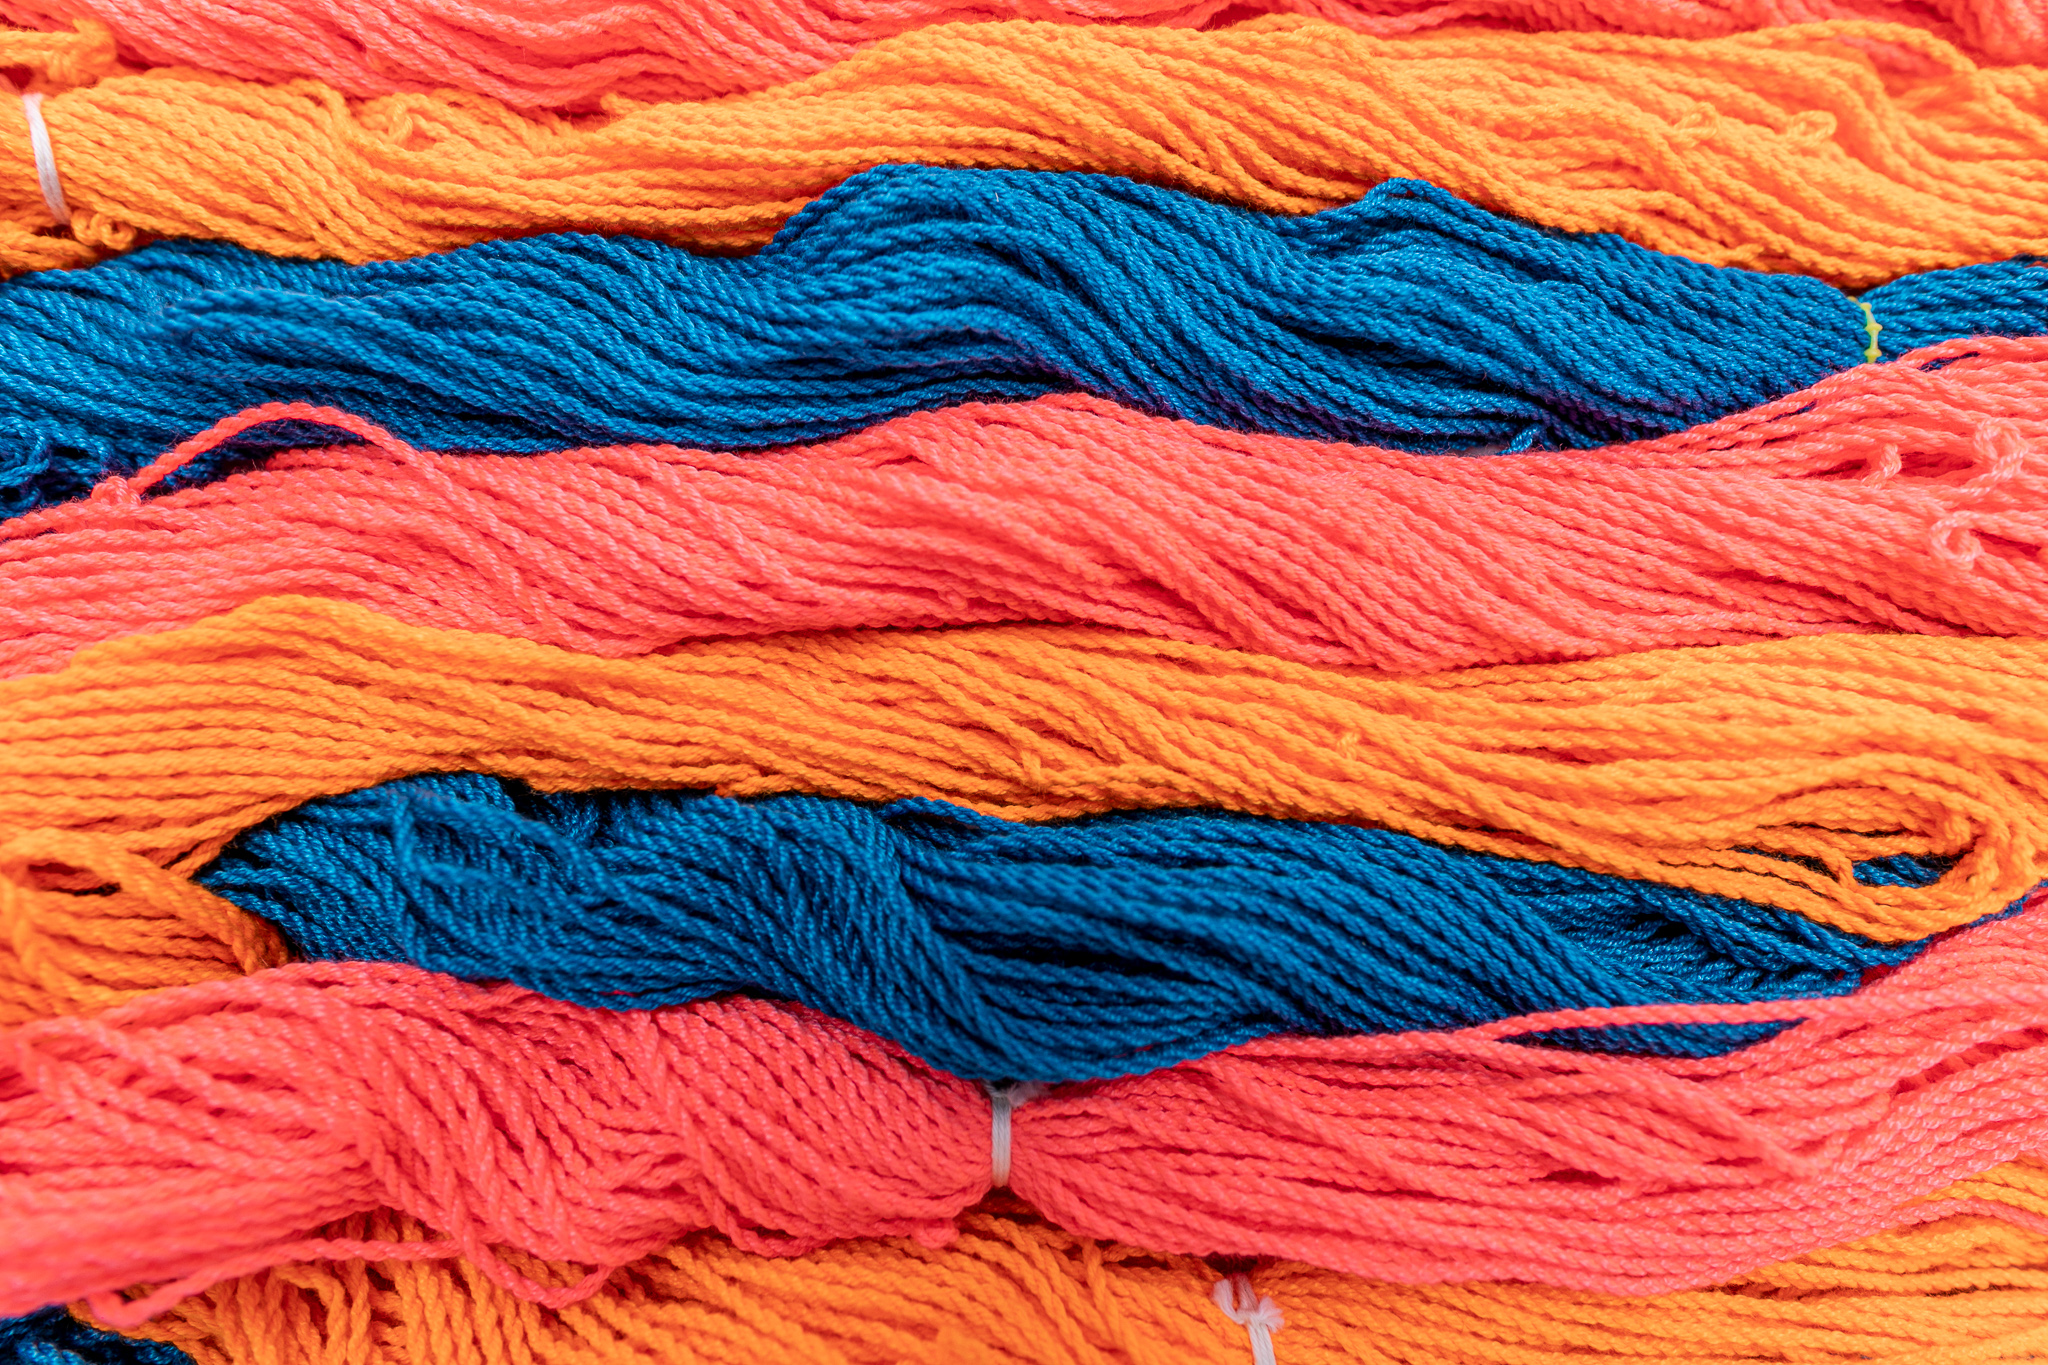 THE STRING - –100% POLYESTER–We tie the strings onto each YOYO by hand. The strings we use are guaranteed to last for years of use.